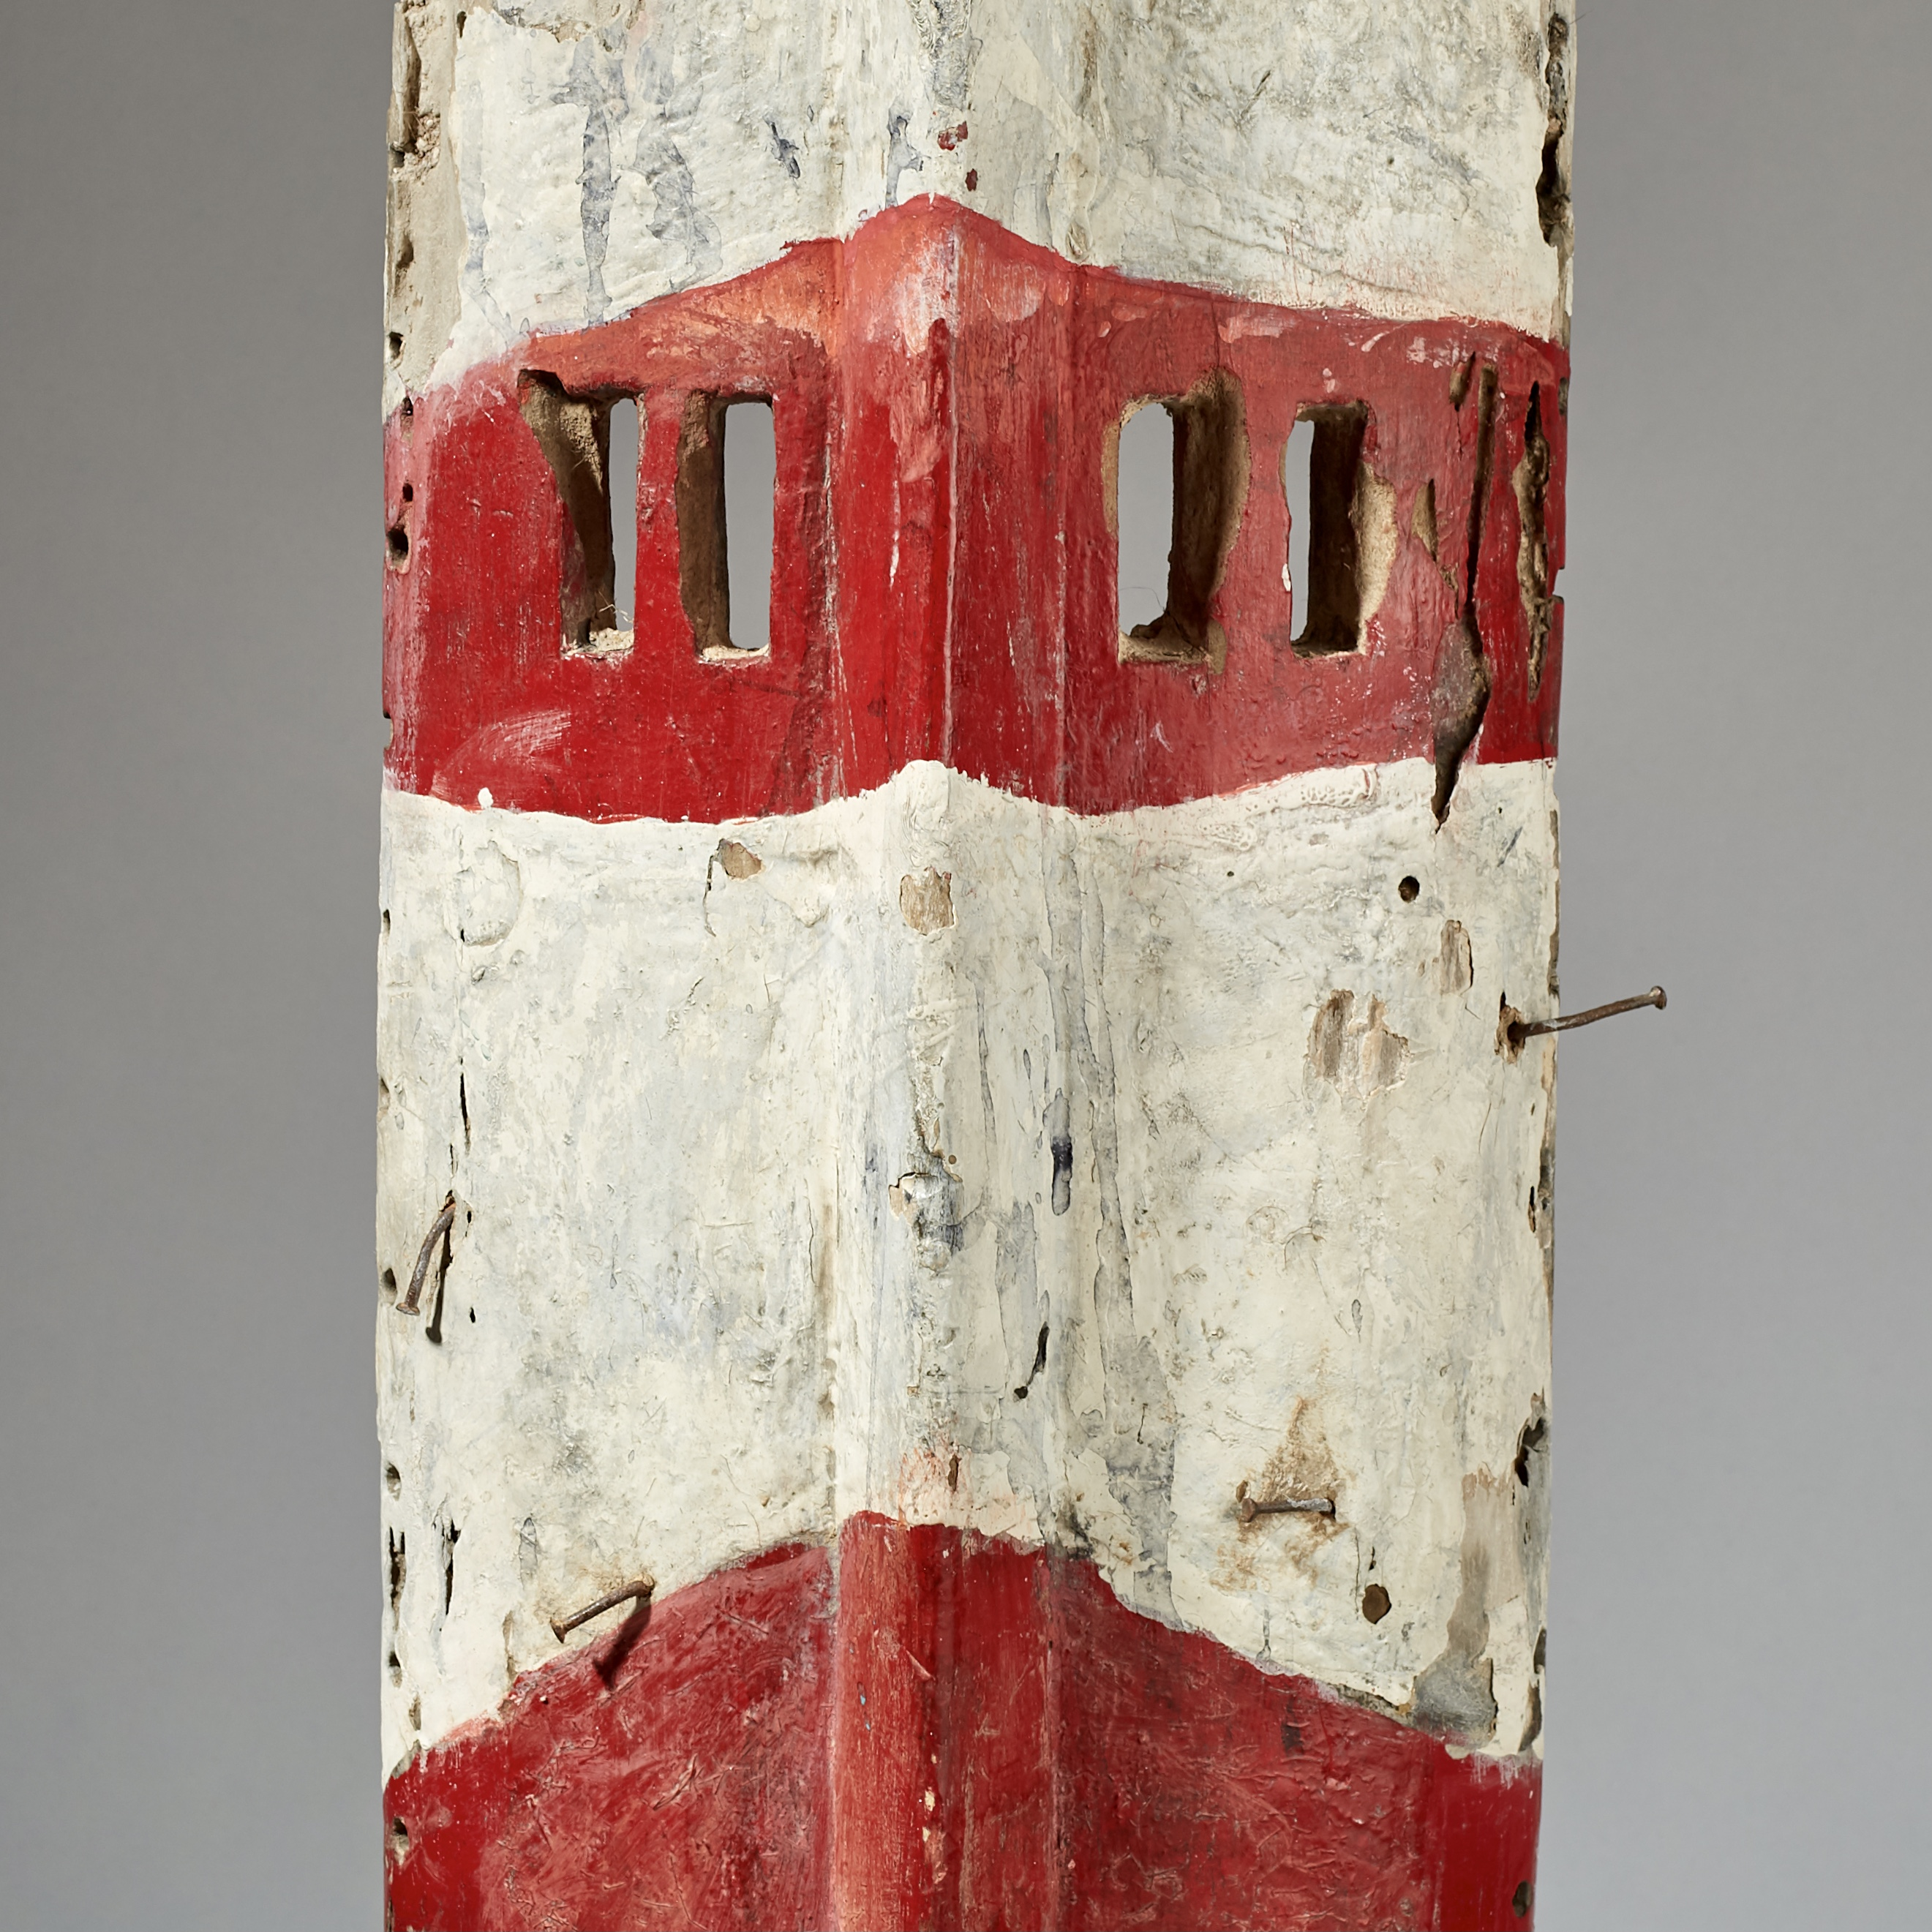 A TALL + GRAPHIC MOSSI MASK FROM BURKINA FASO ( No 3073 )